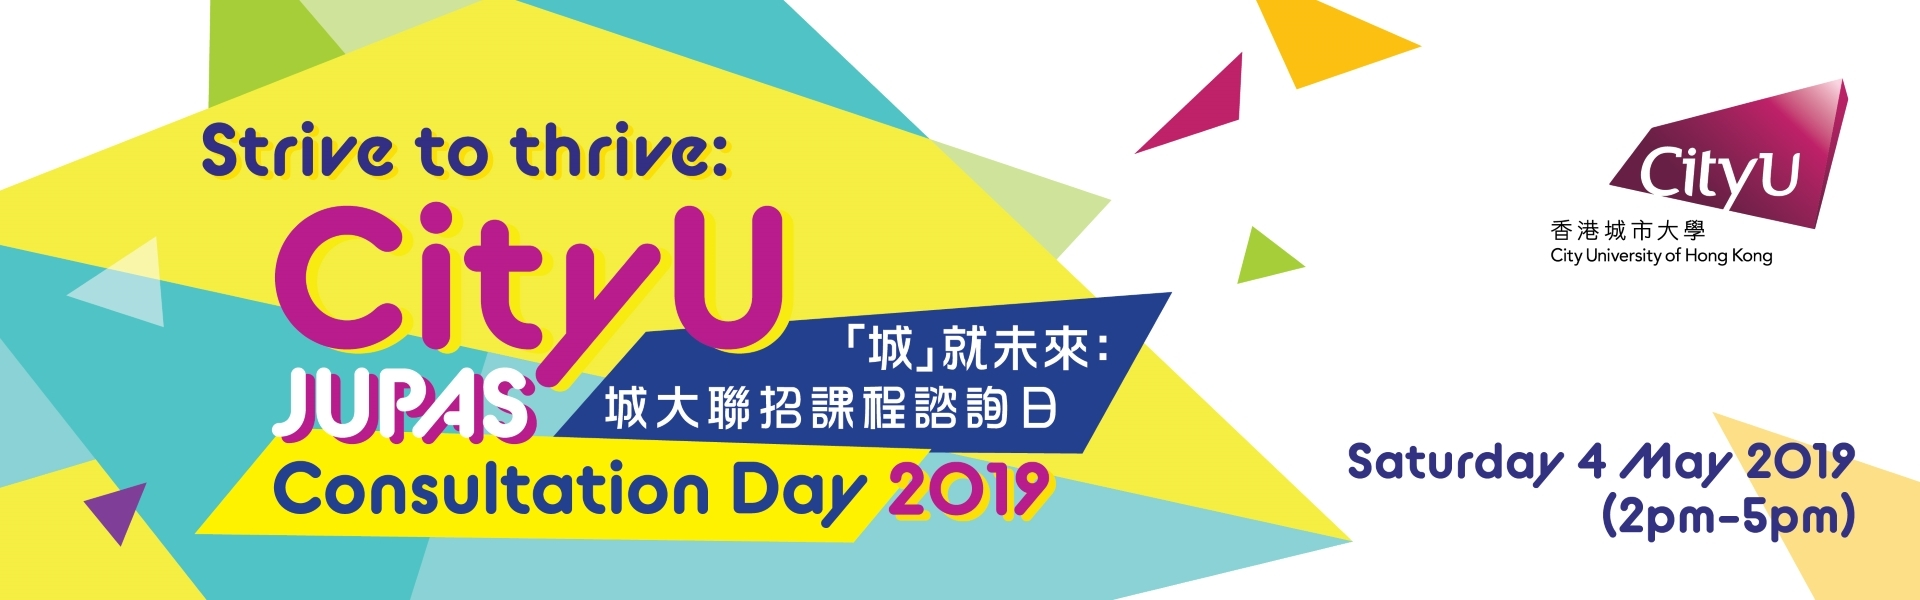 CityU JUPAS Consultation Day 2019